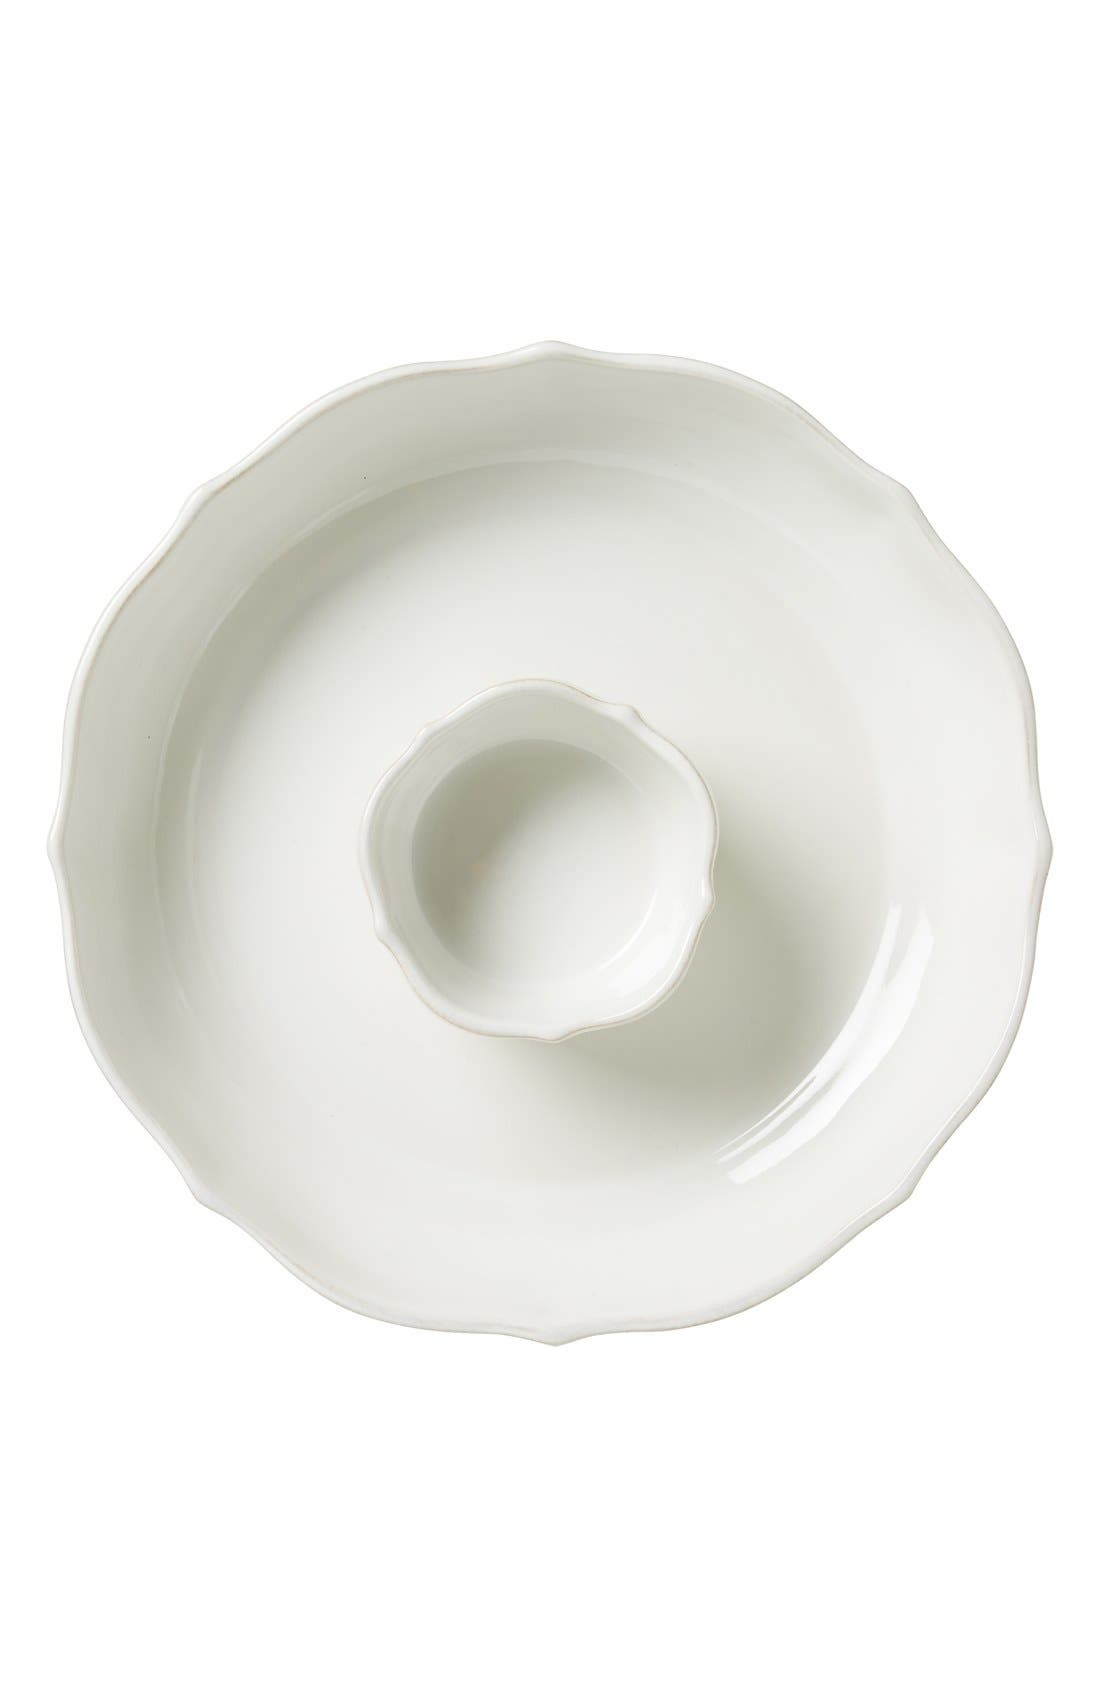 'Berry and Thread' Chips & Dip Serving Bowl,                         Main,                         color, WHITEWASH